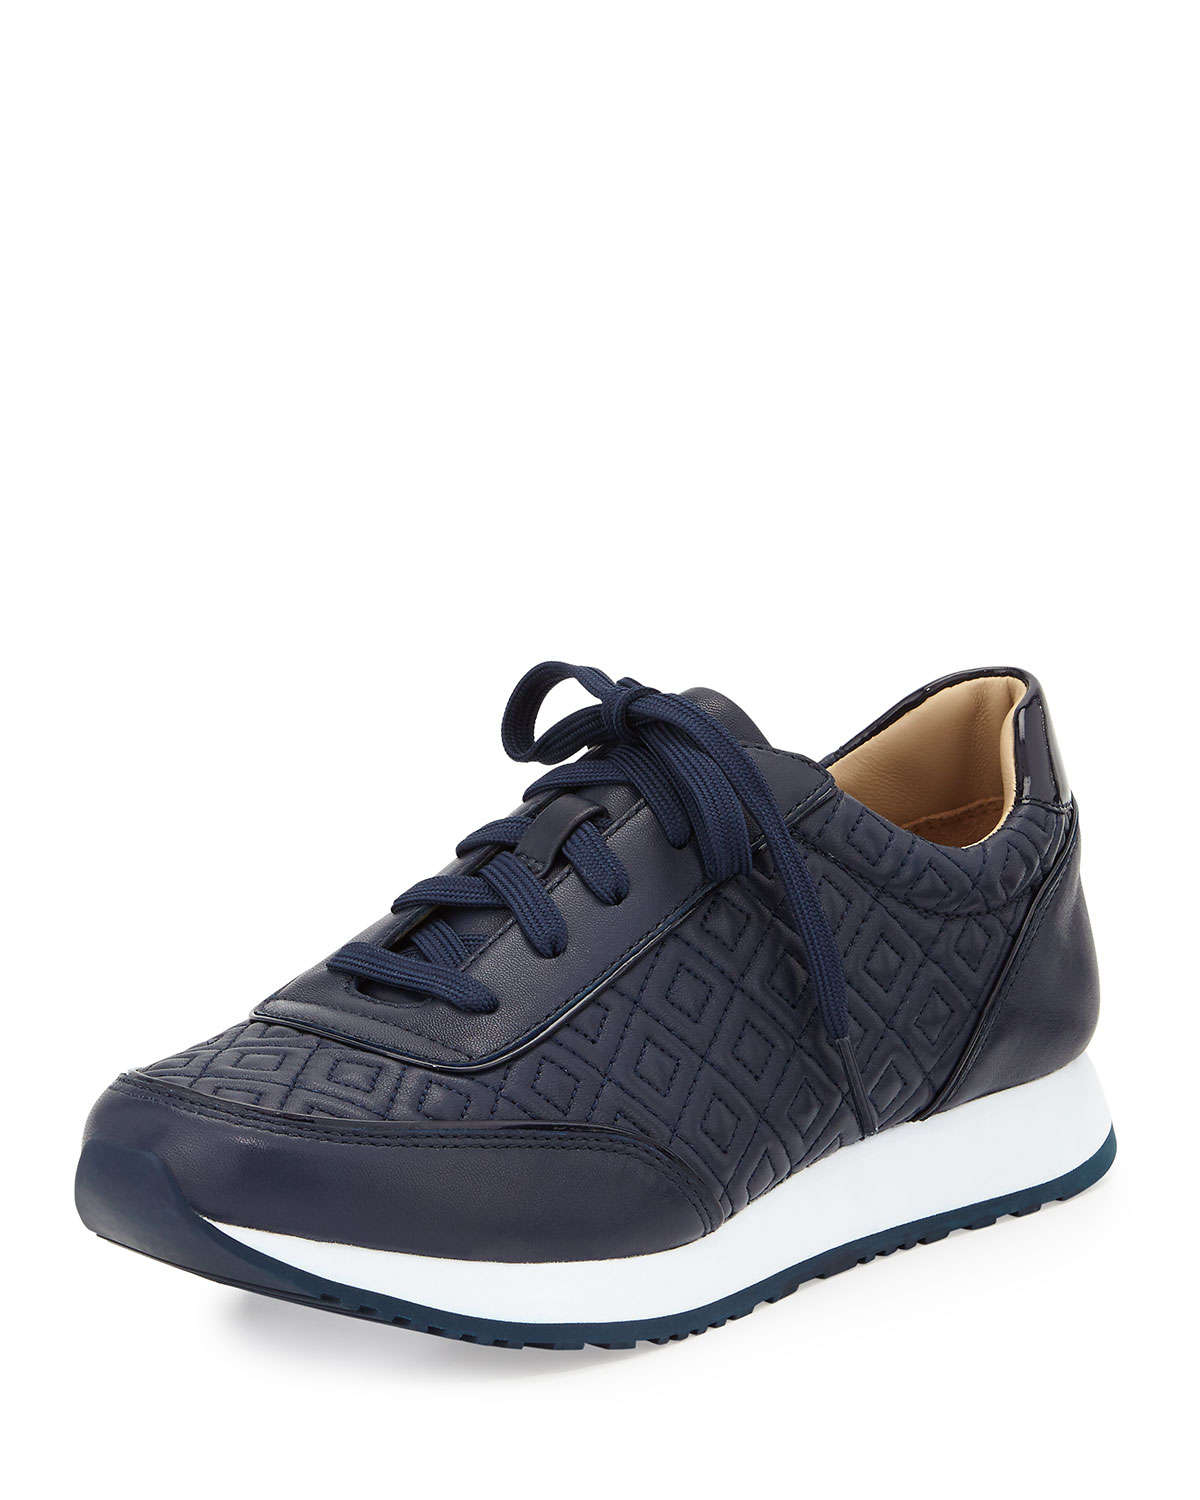 Lyst - Tory Burch Clive Quilted Leather Sneaker in Blue